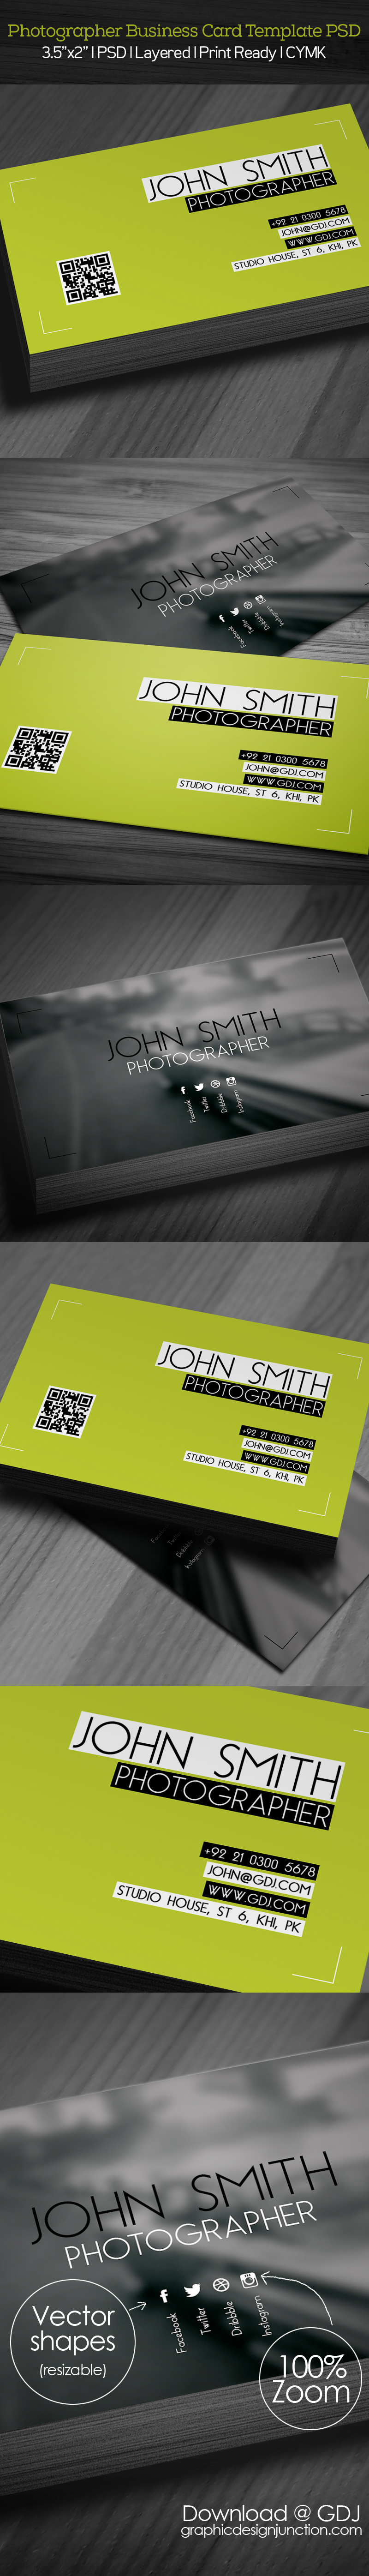 Free grapher Business Card PSD Template Freebies